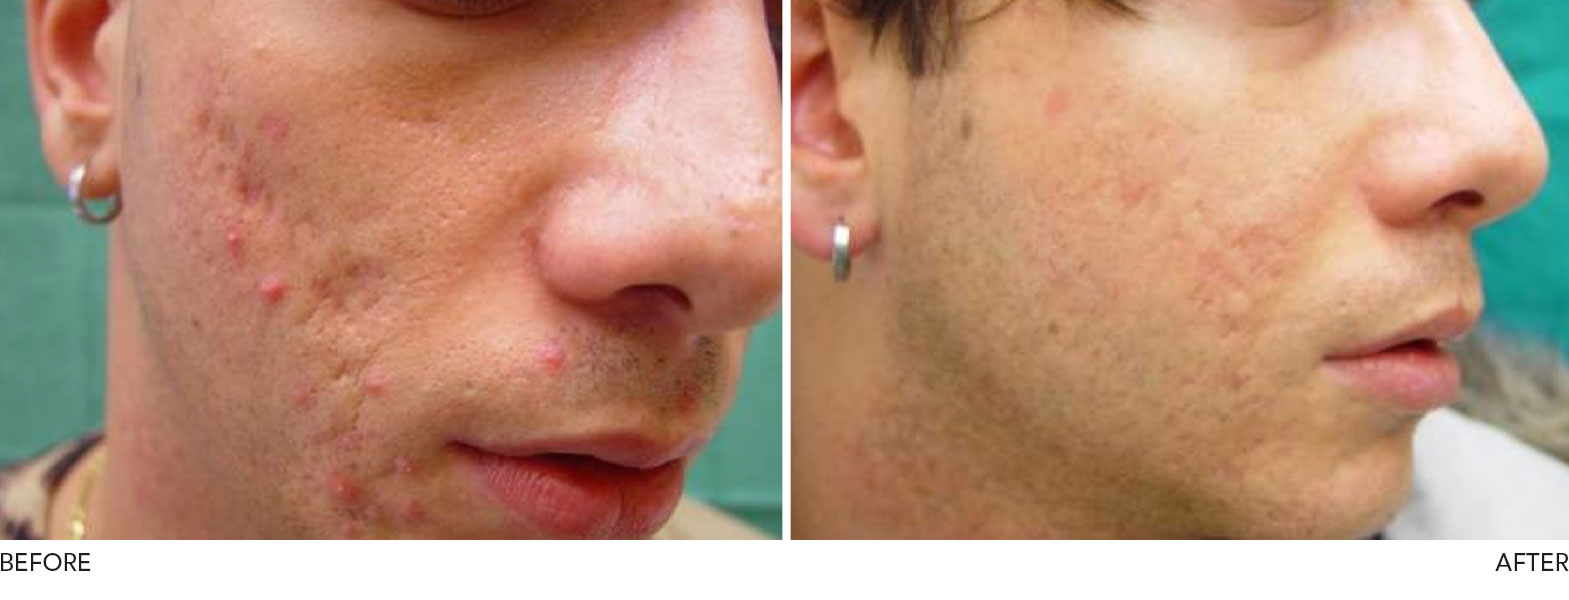 acne adult condition more treatment